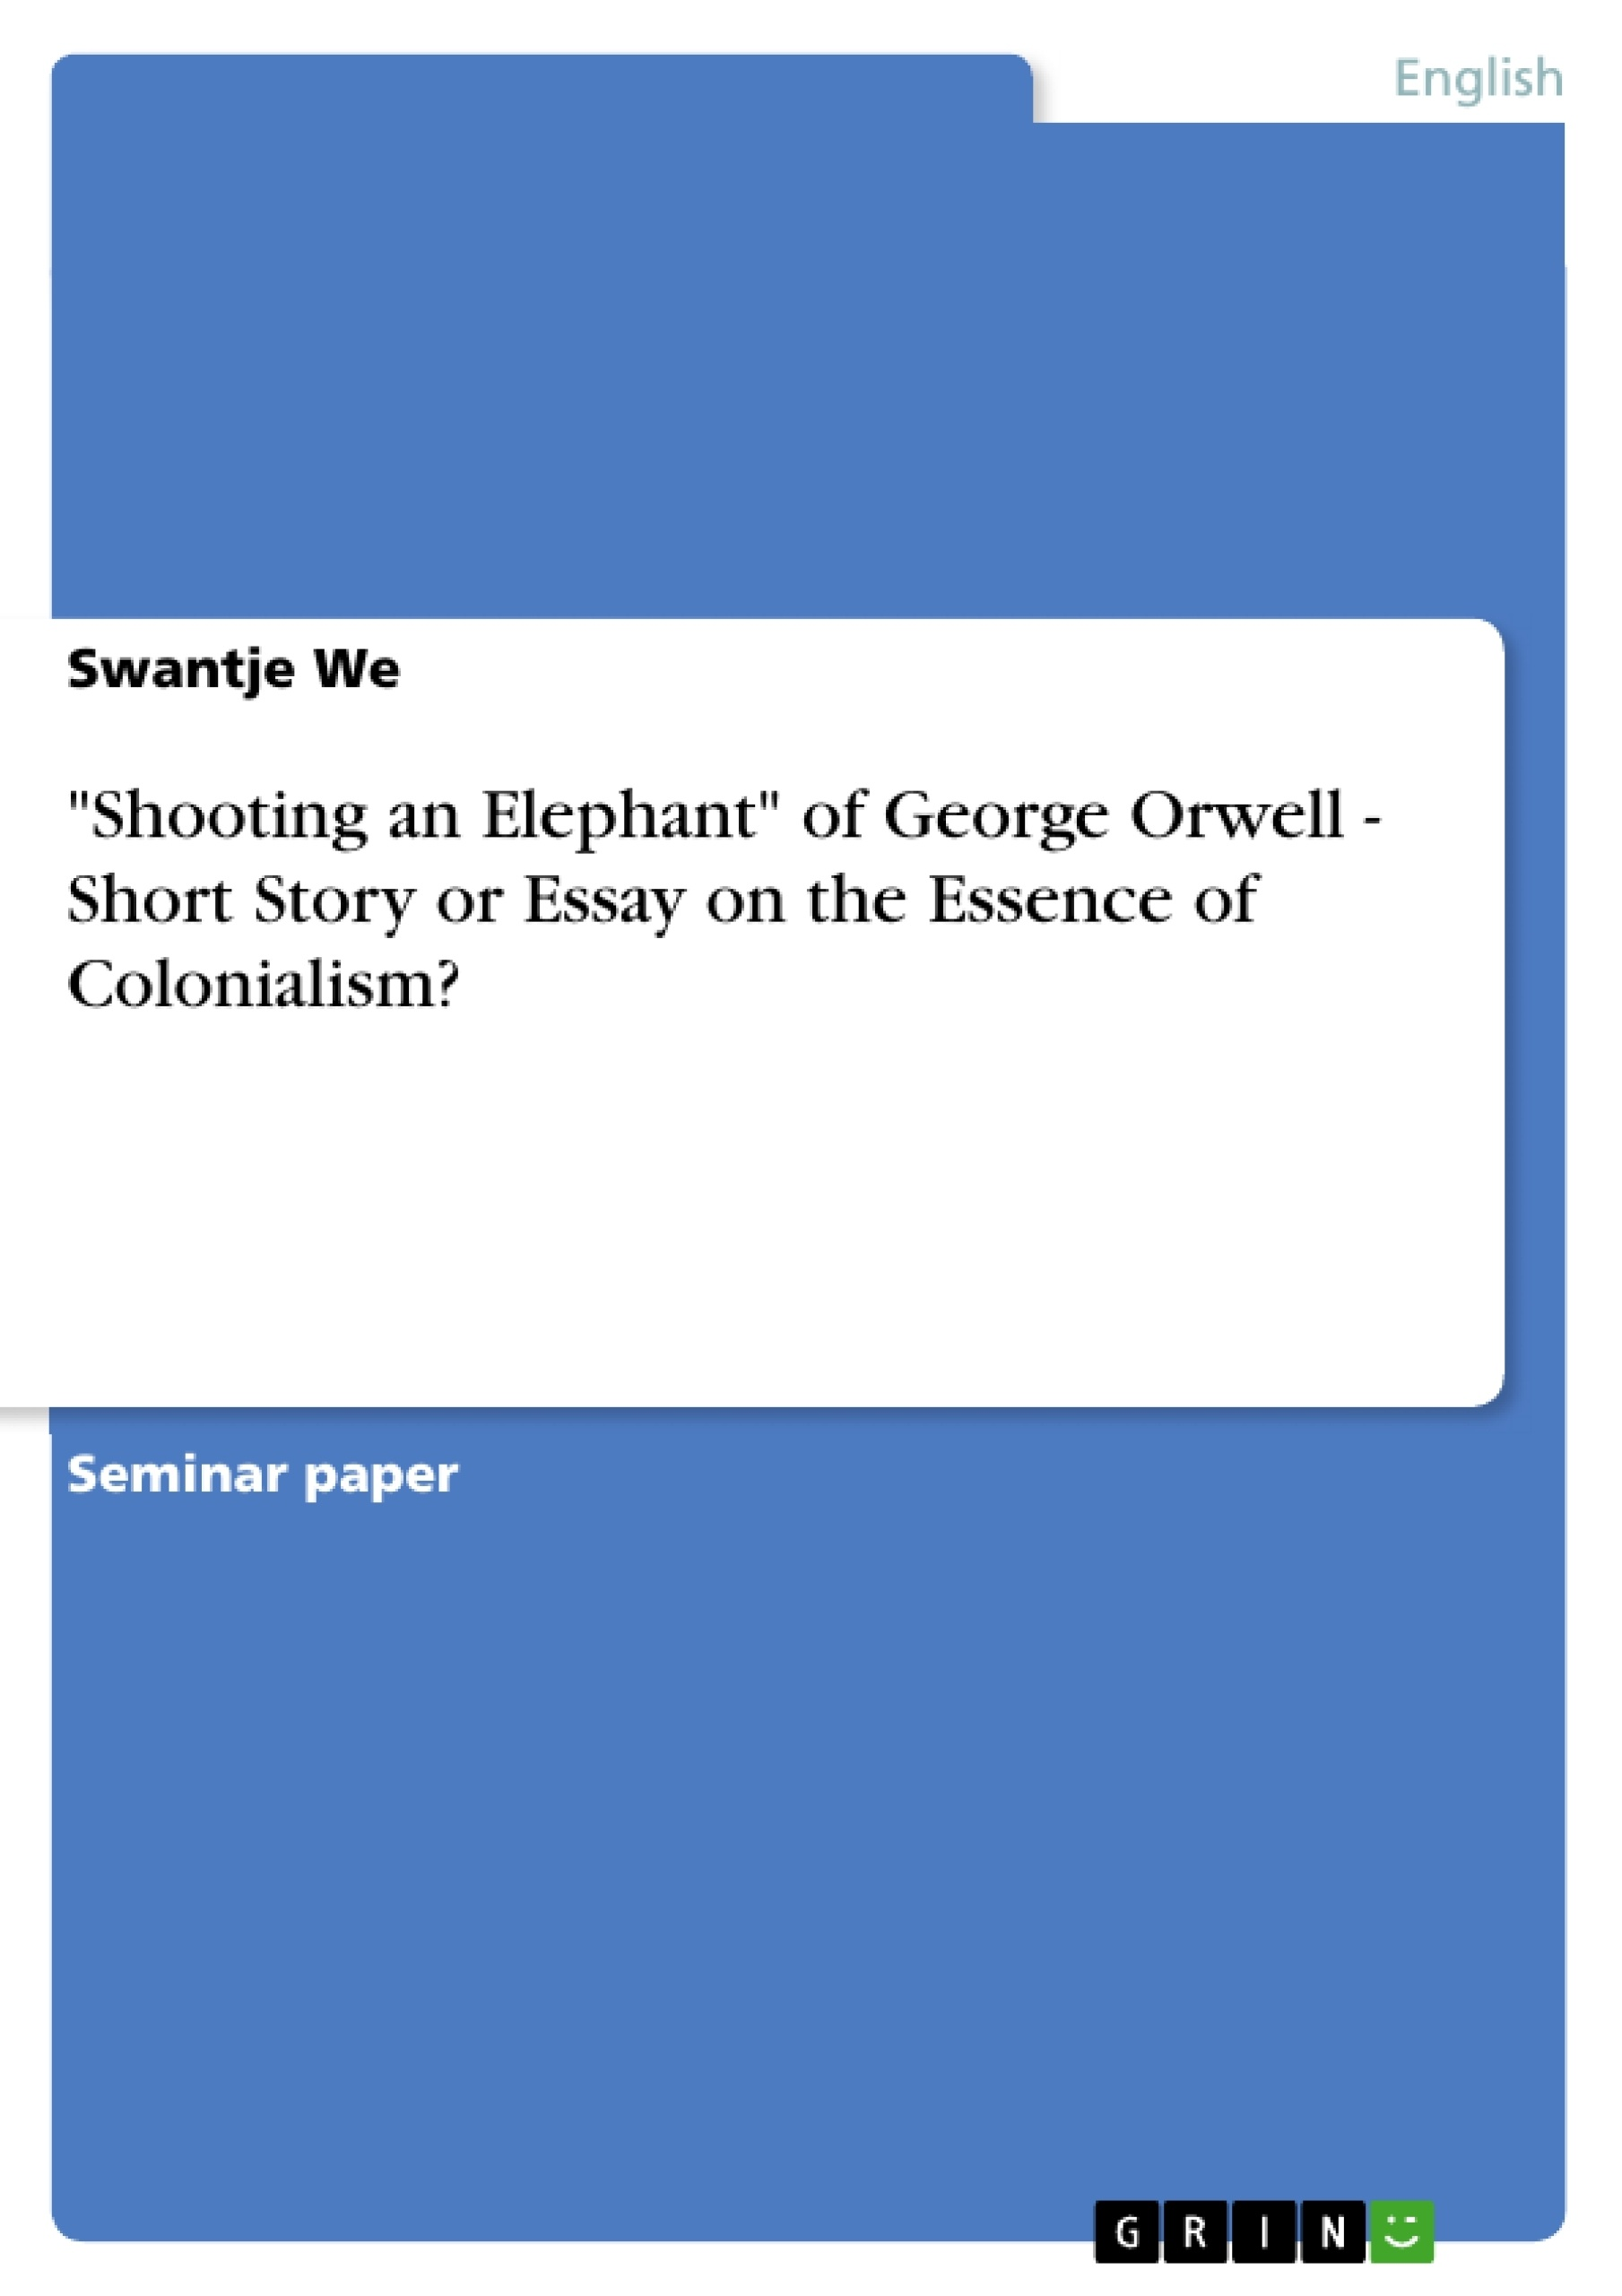 essay short story short stories in essays short story titles in  shooting an elephant of george orwell short story or essay on shooting an elephant of george